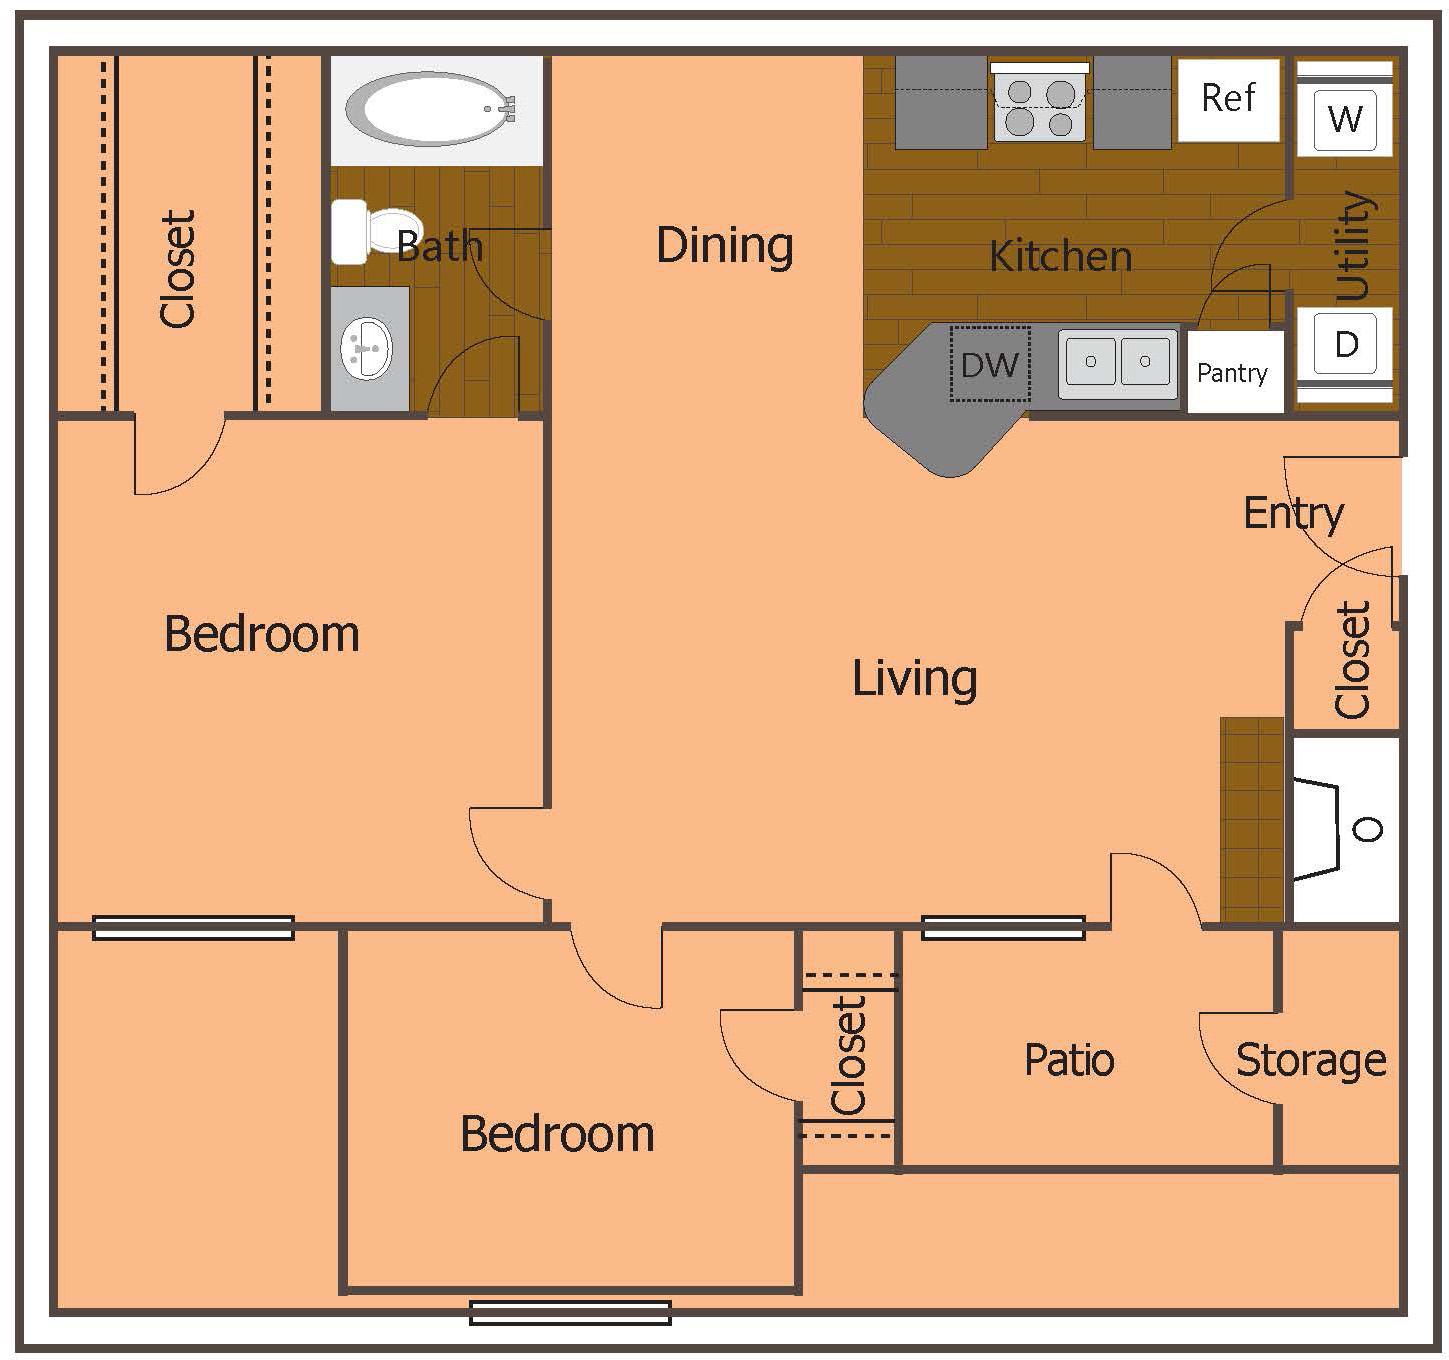 2 Bed 1 BathApartment In West Plano TX   Greenbriar Apartments. 1 Bedroom Apartments Plano Tx. Home Design Ideas